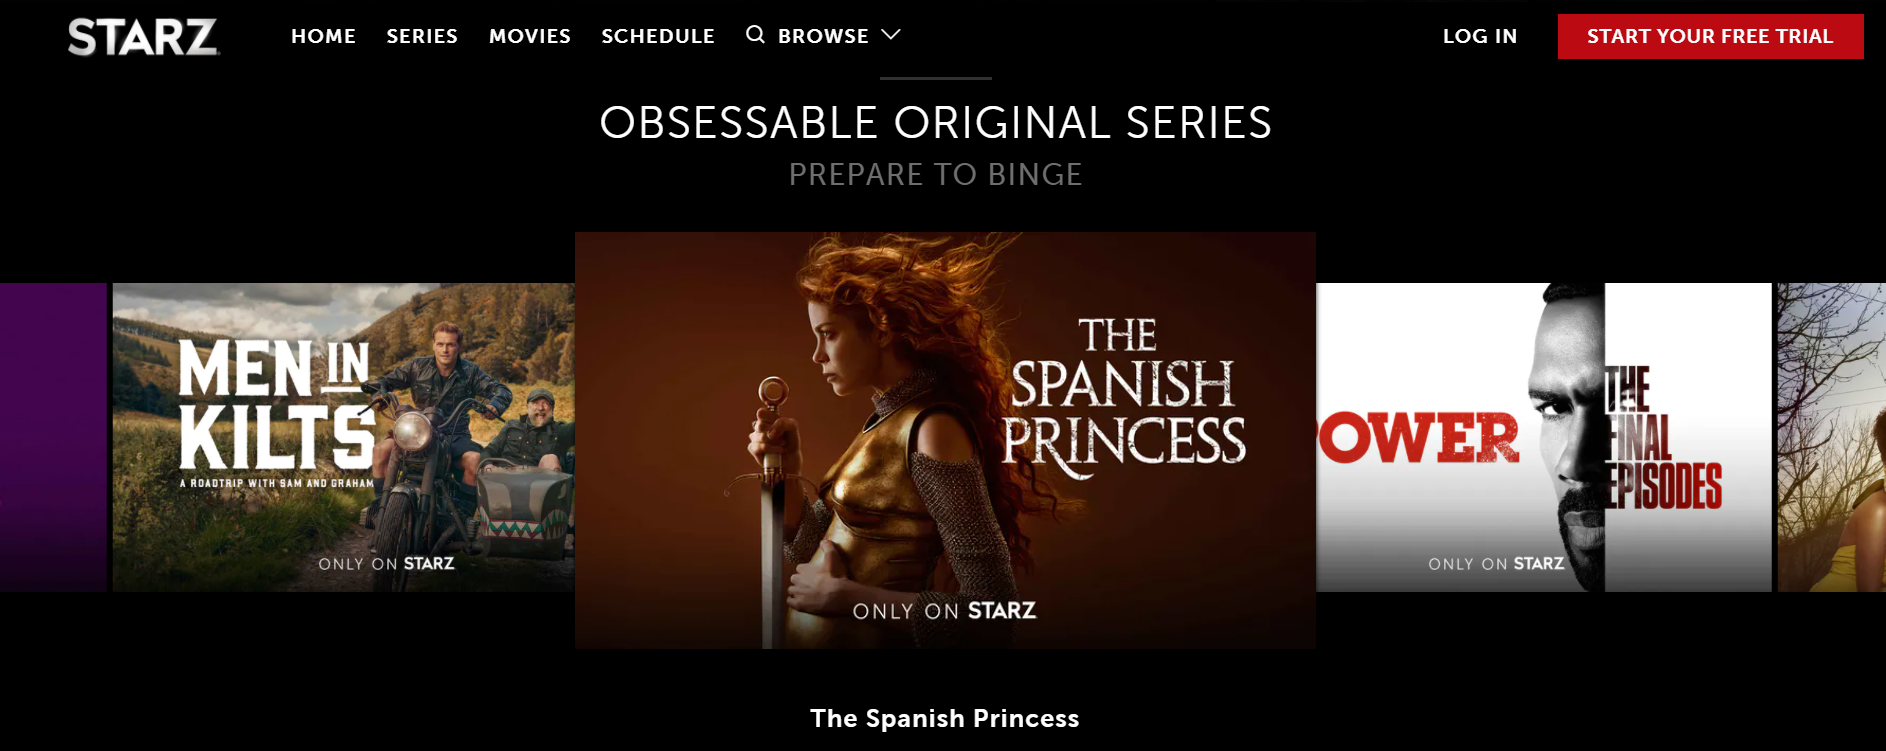 How to Get Starz Free Trial Subscription?